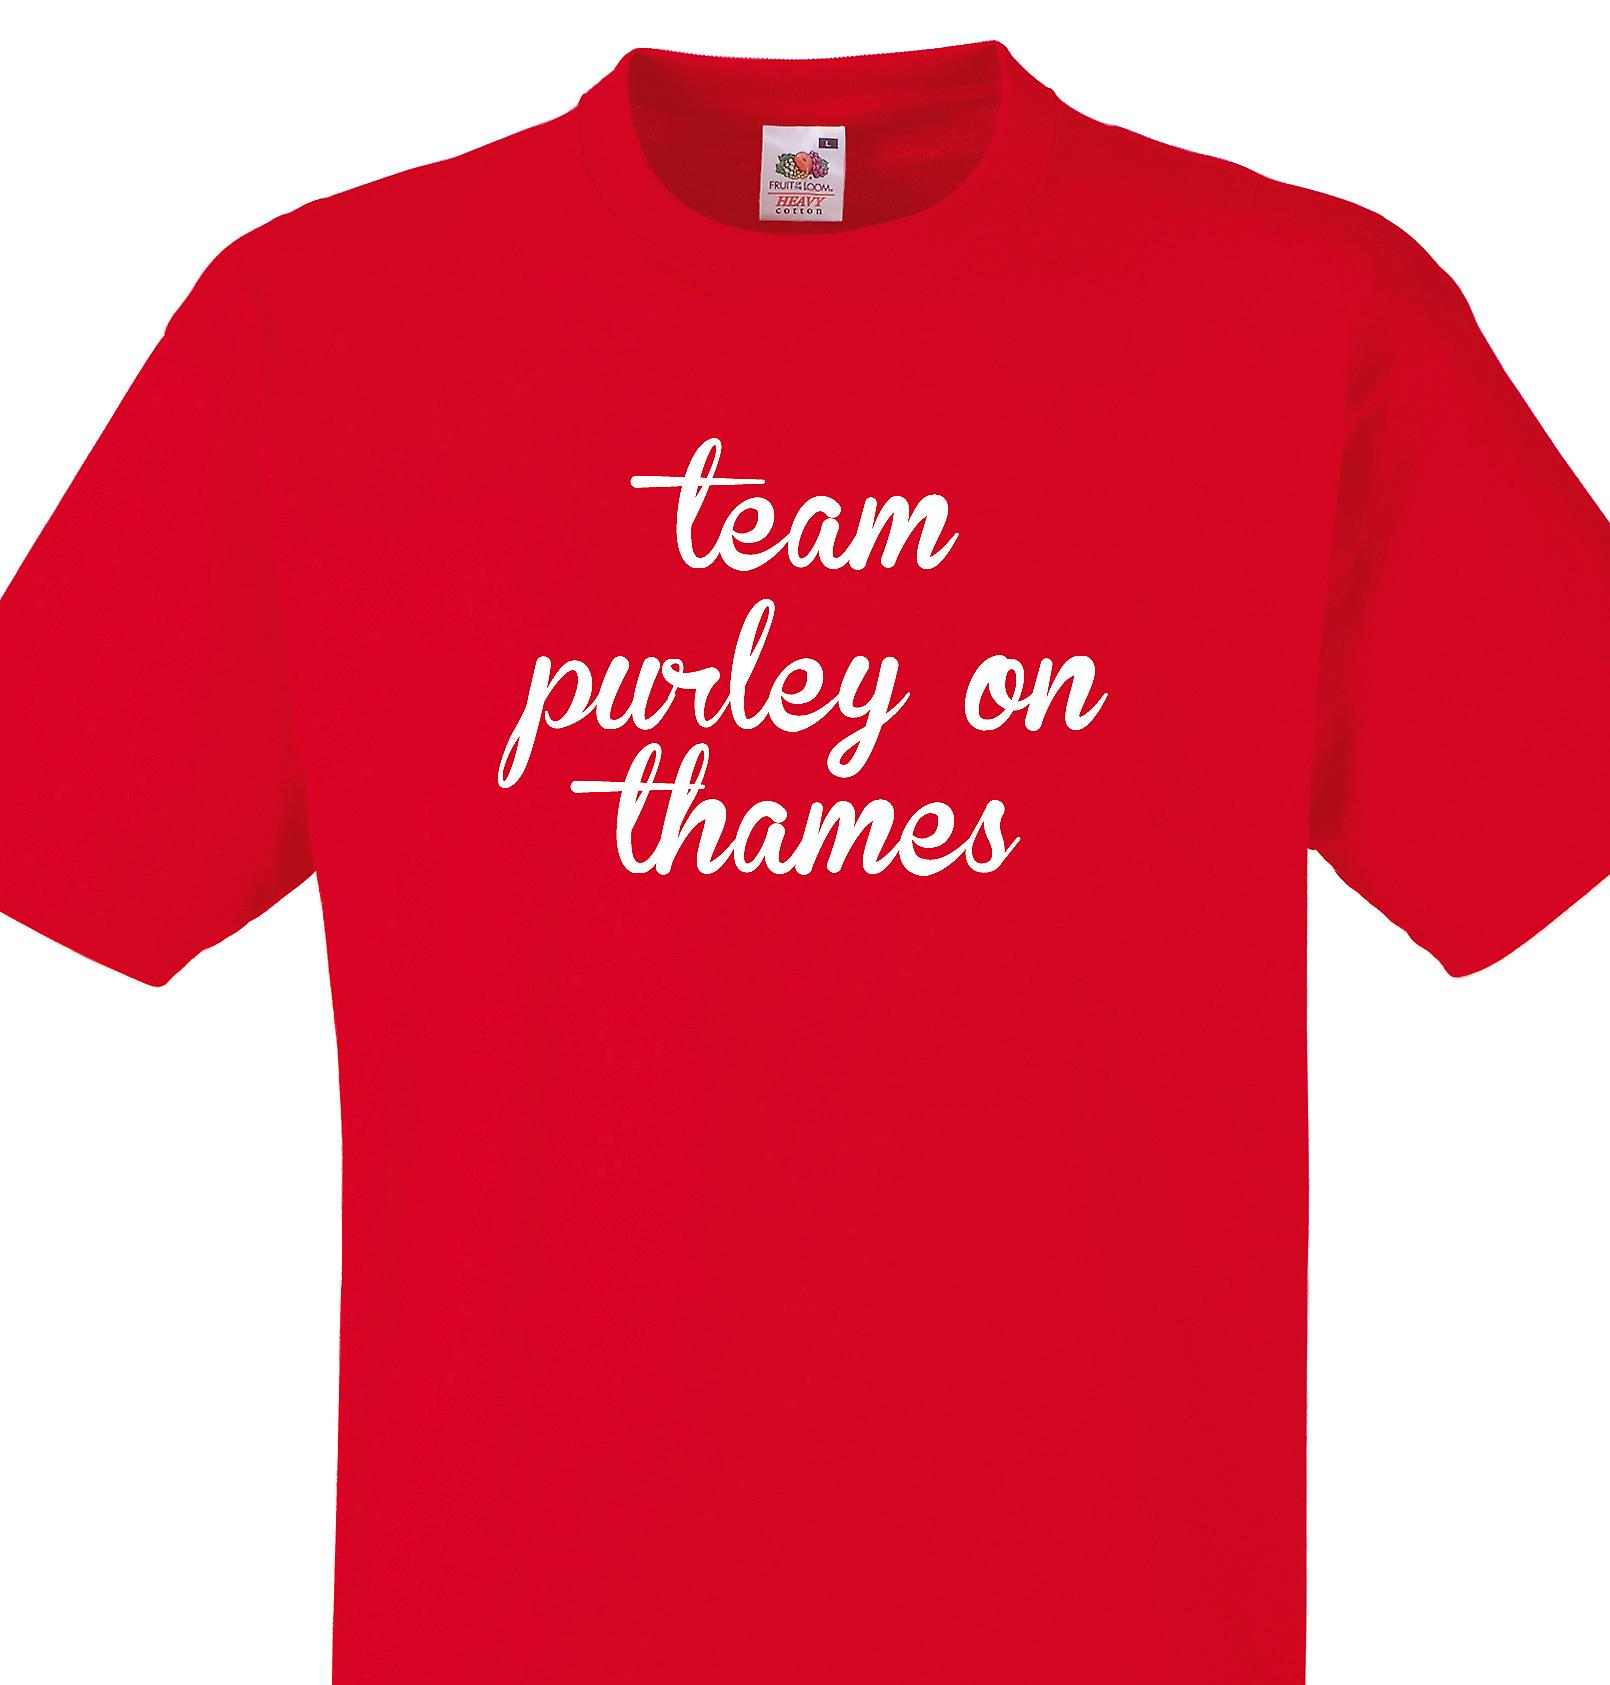 Team Purley on thames Red T shirt